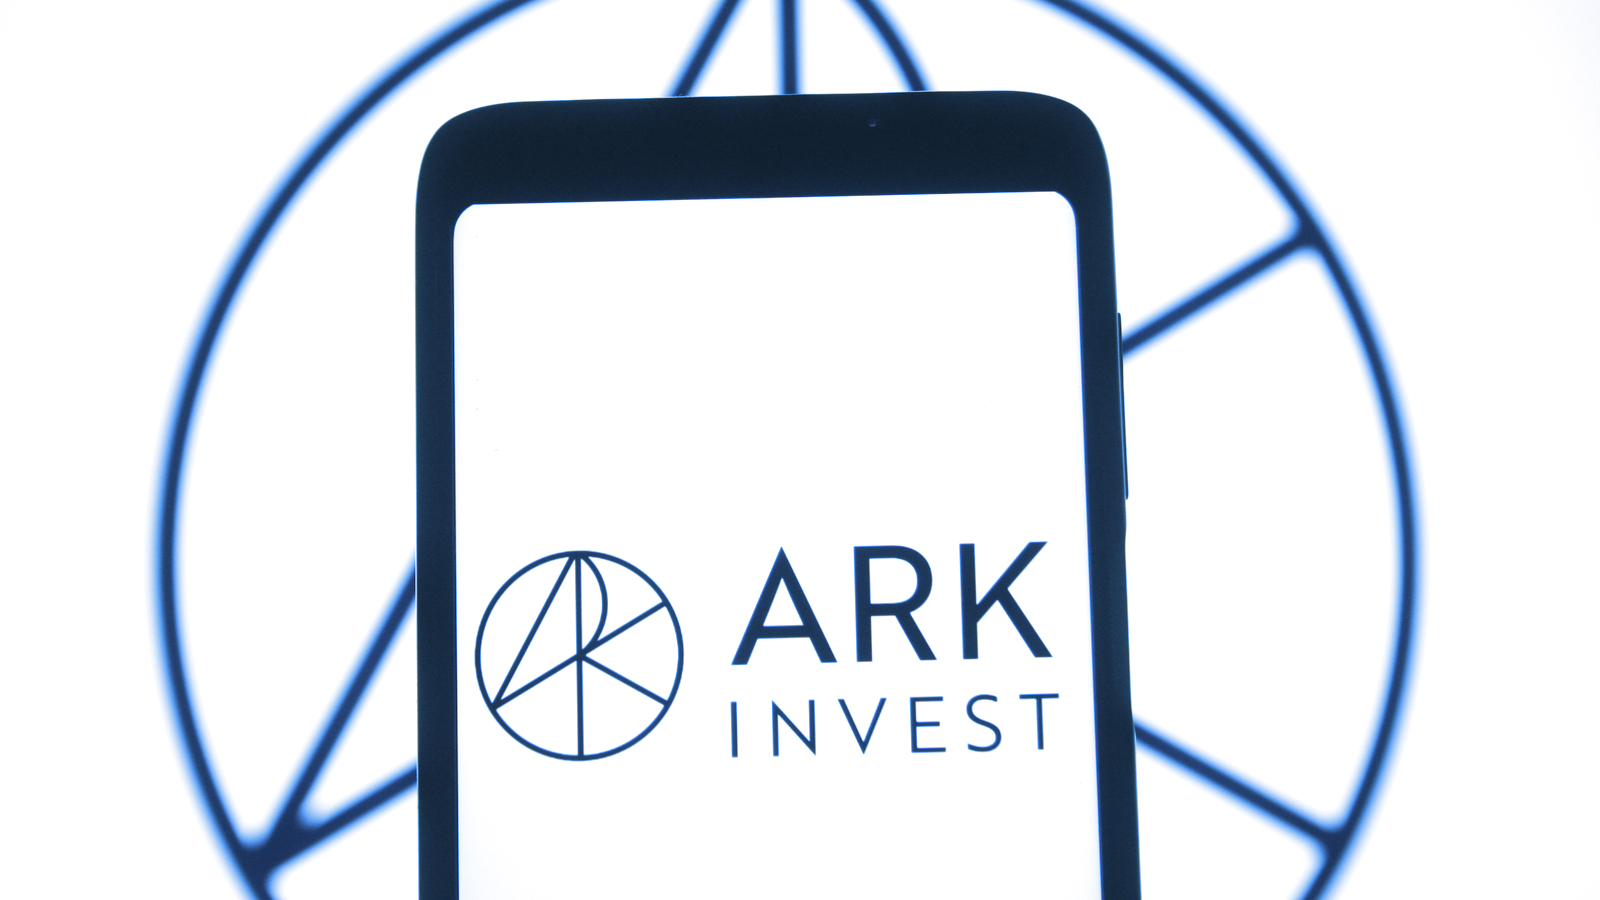 ARK Invest Bought $29M Shares in Grayscale Bitcoin Trust During Crash